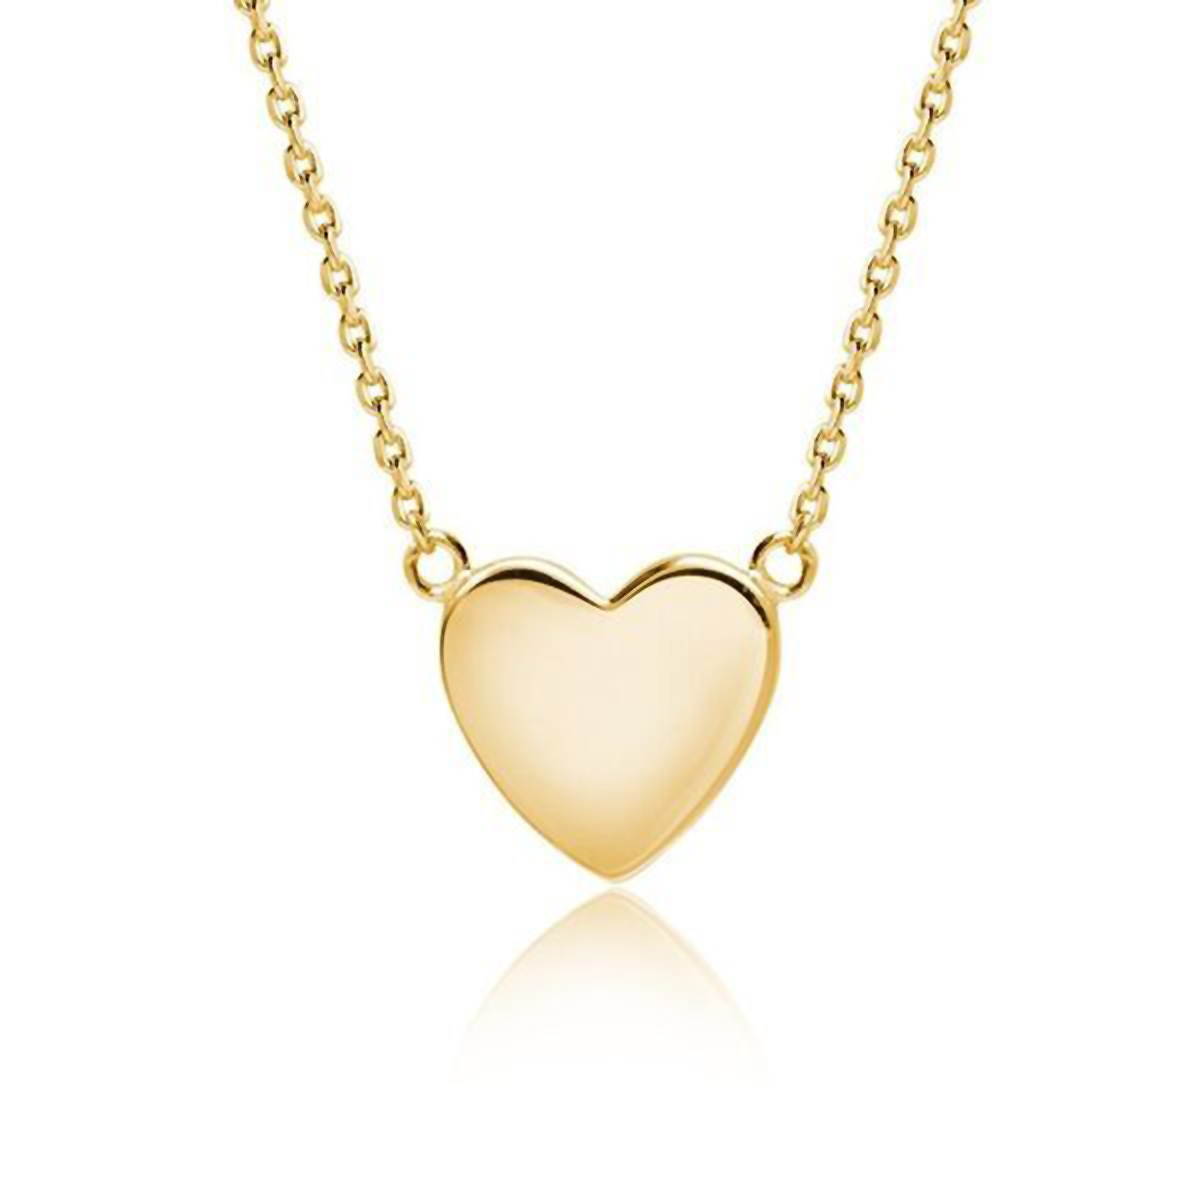 sophie_by_sophie_heart_necklace_details_gold_webb